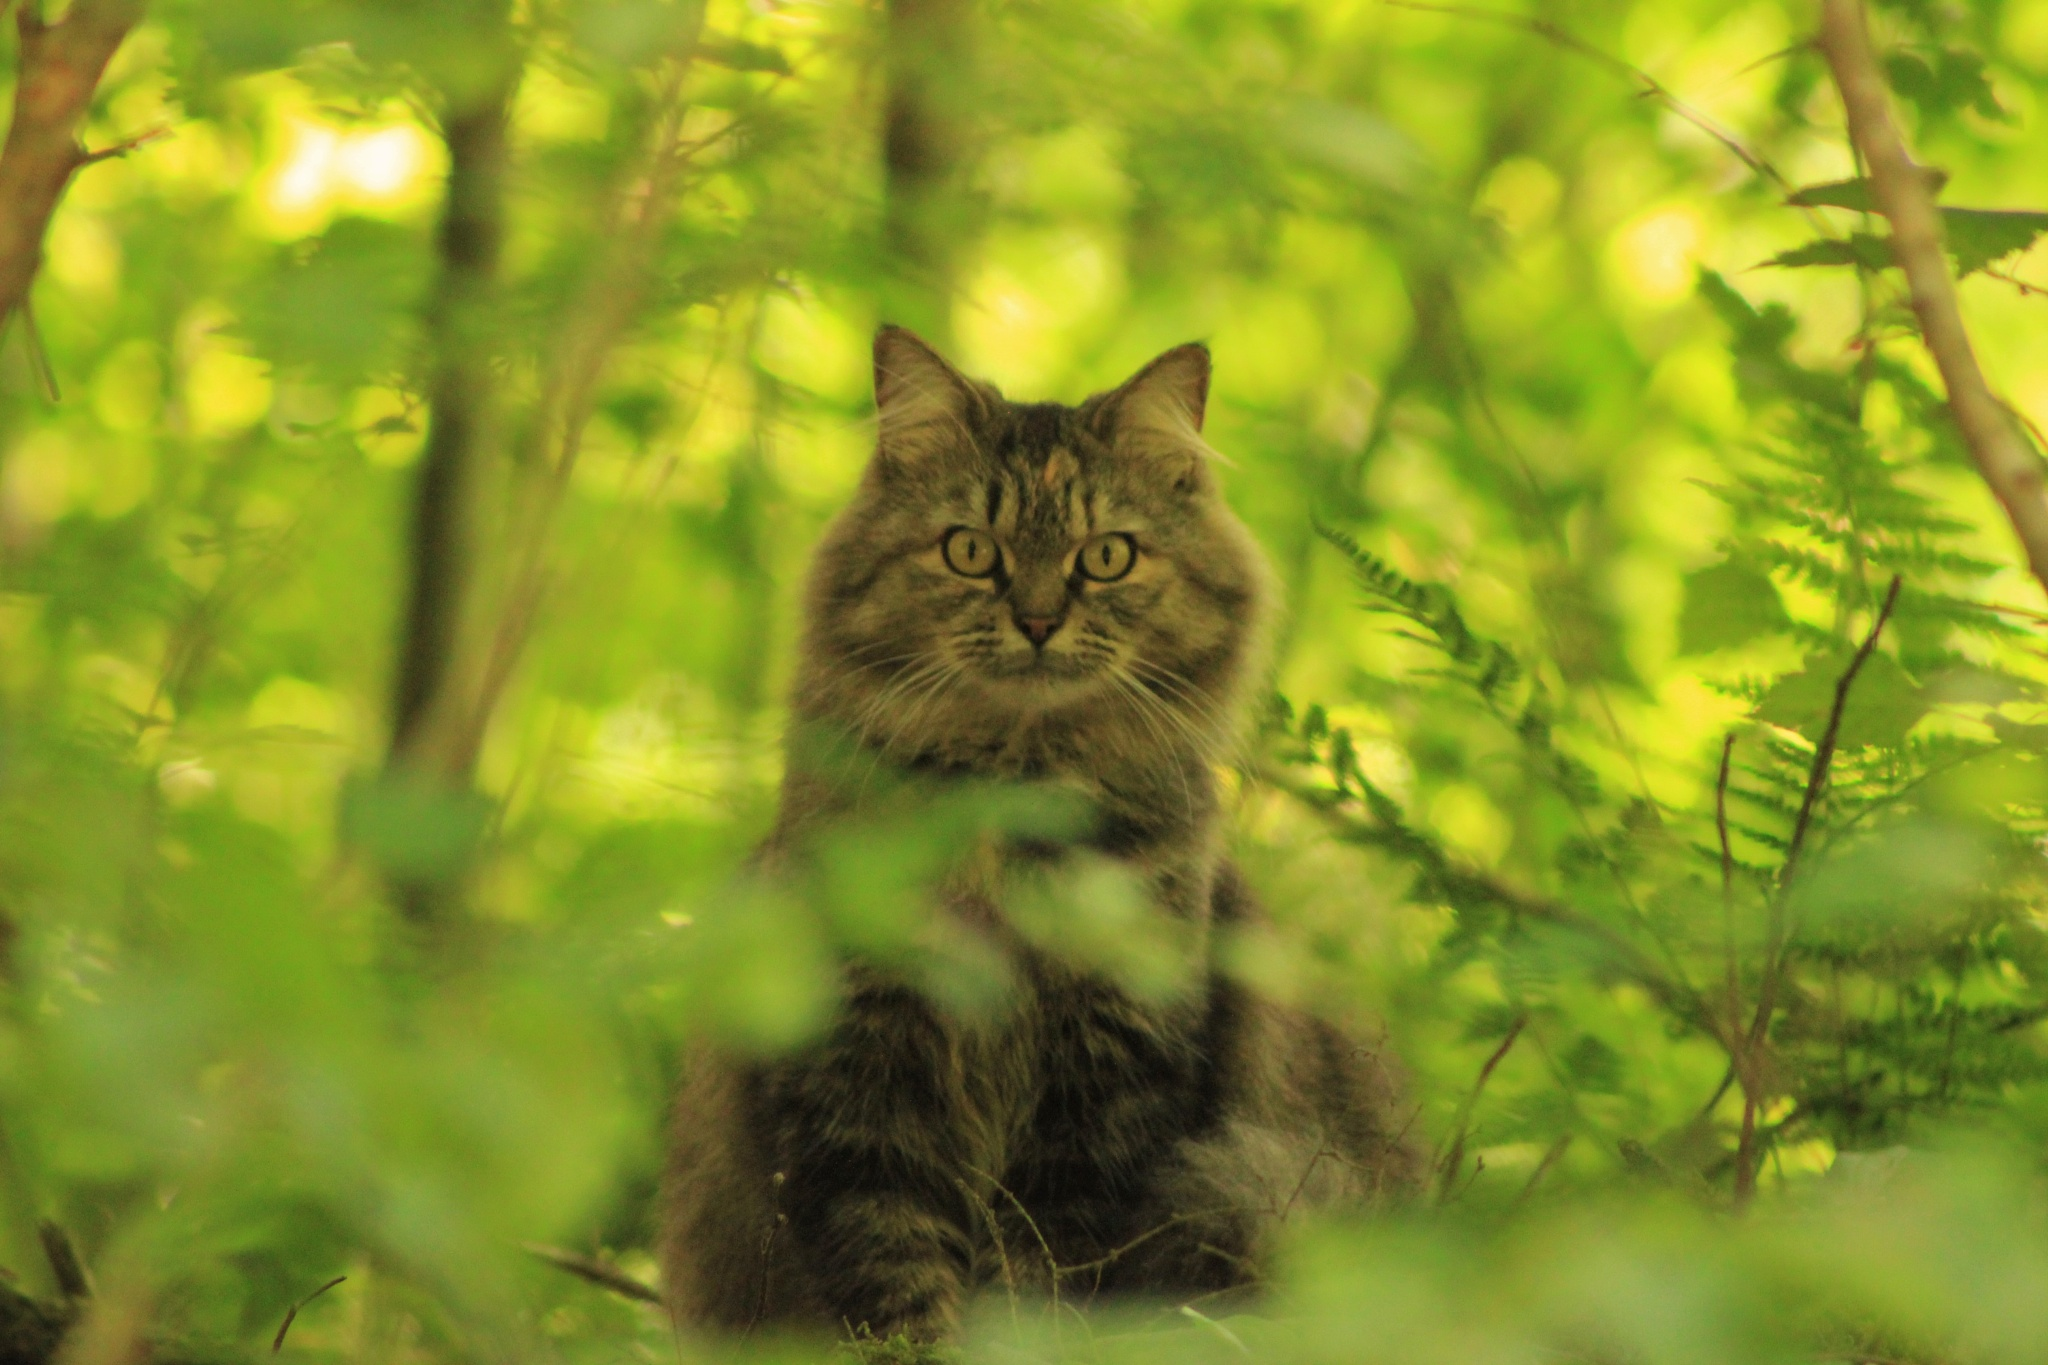 Fluffy Feline Hiding in the Weeds by Auggie23